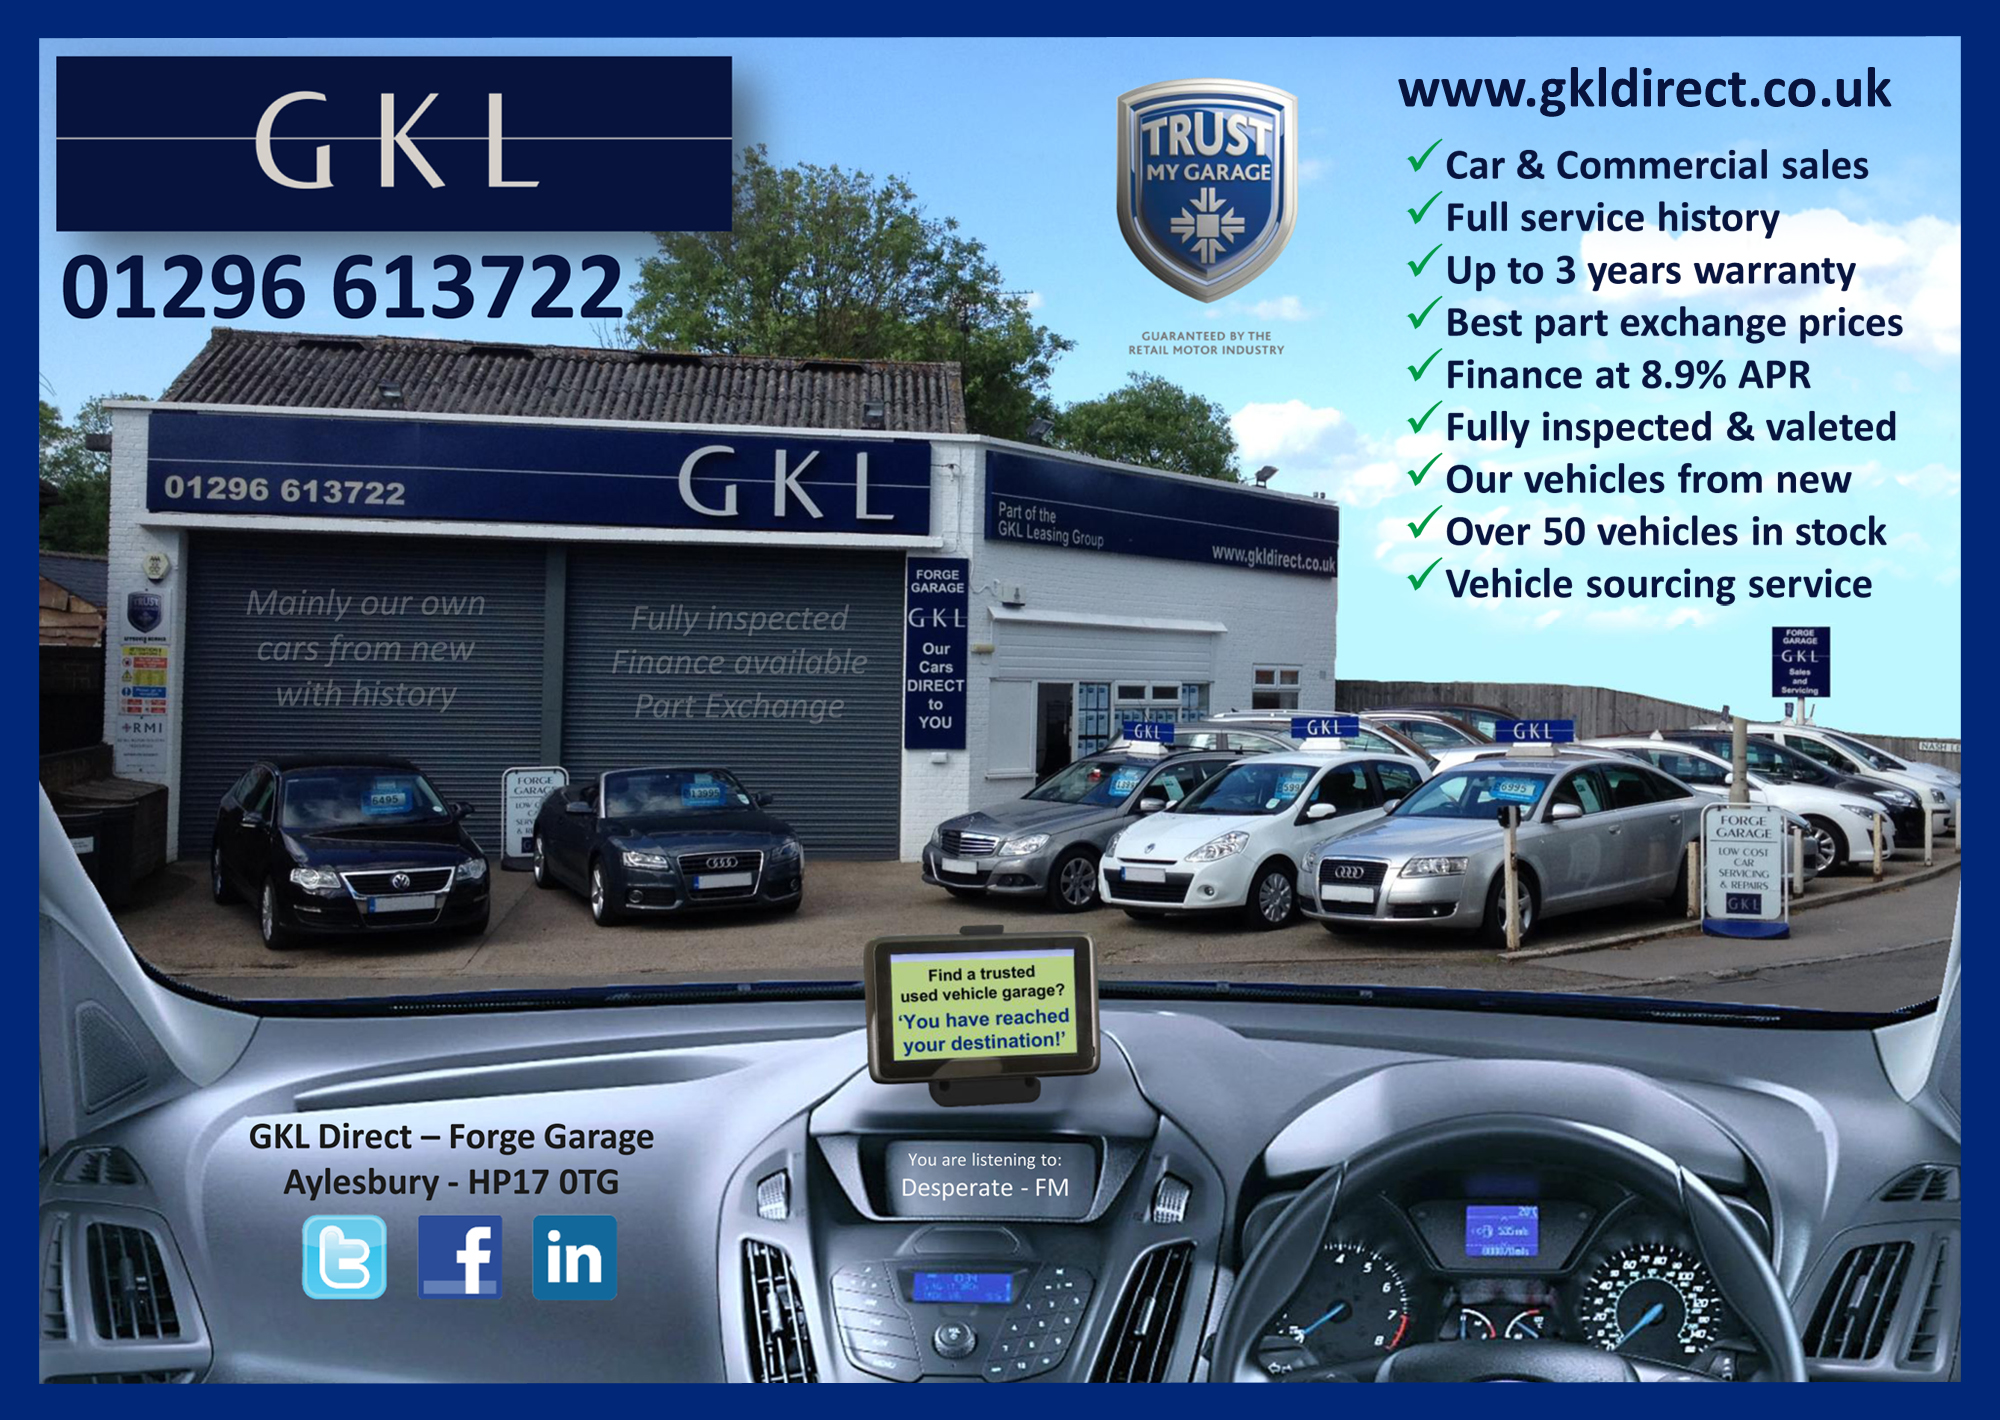 GKL Direct Vehicle Sales